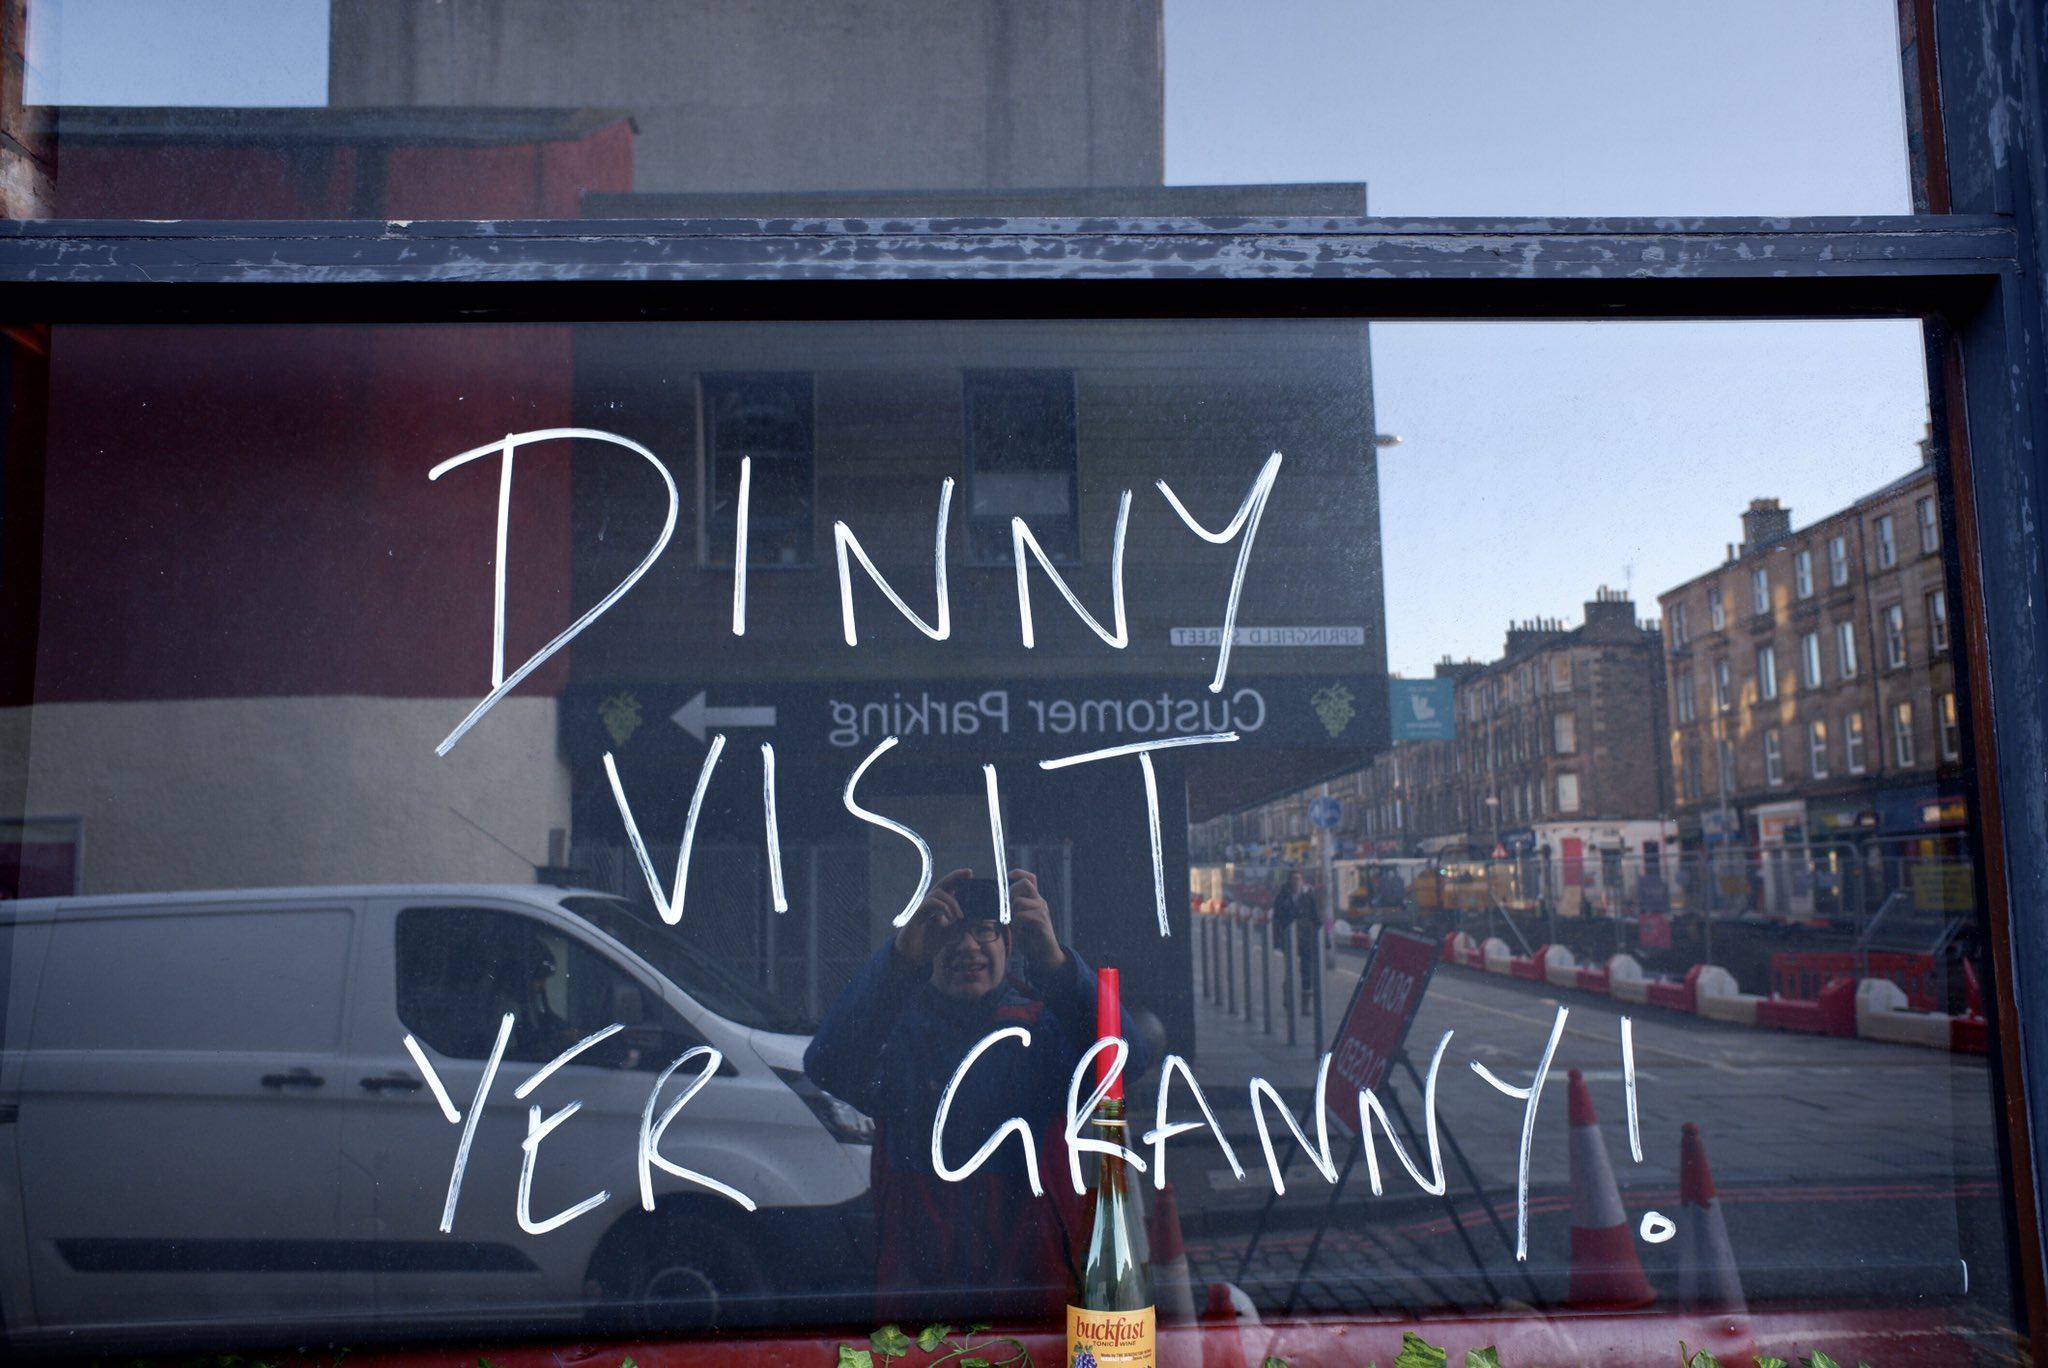 Important Public Heath Messages brought to you by concerned citizens of Leith #wordonthestreet #leith https://t.co/RoptkW19Ah